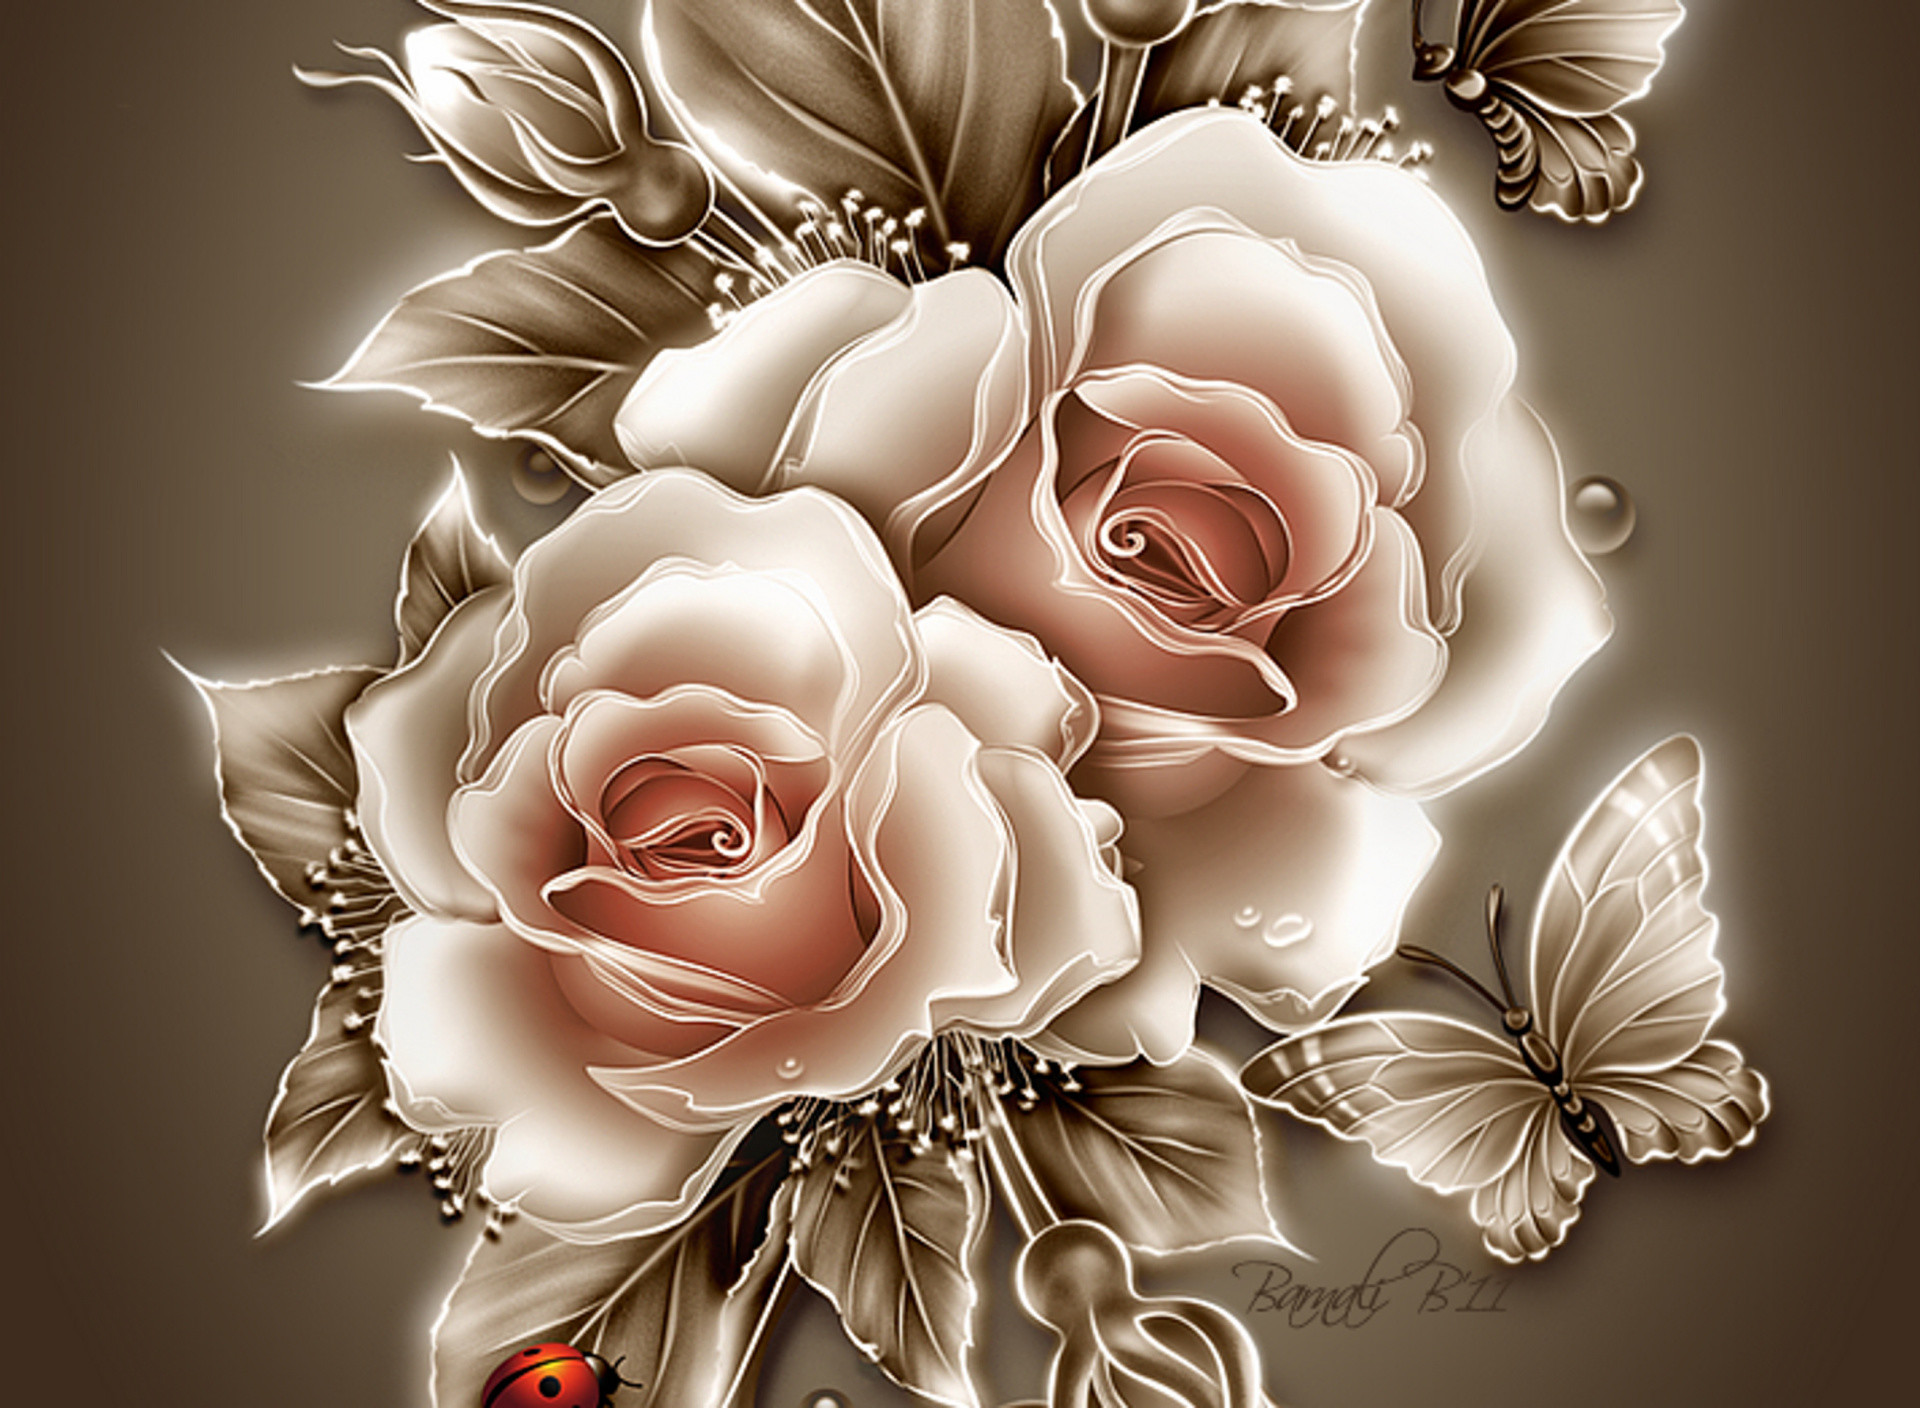 Roses screensaver wallpaper 45 images - Beautiful girl screensaver ...